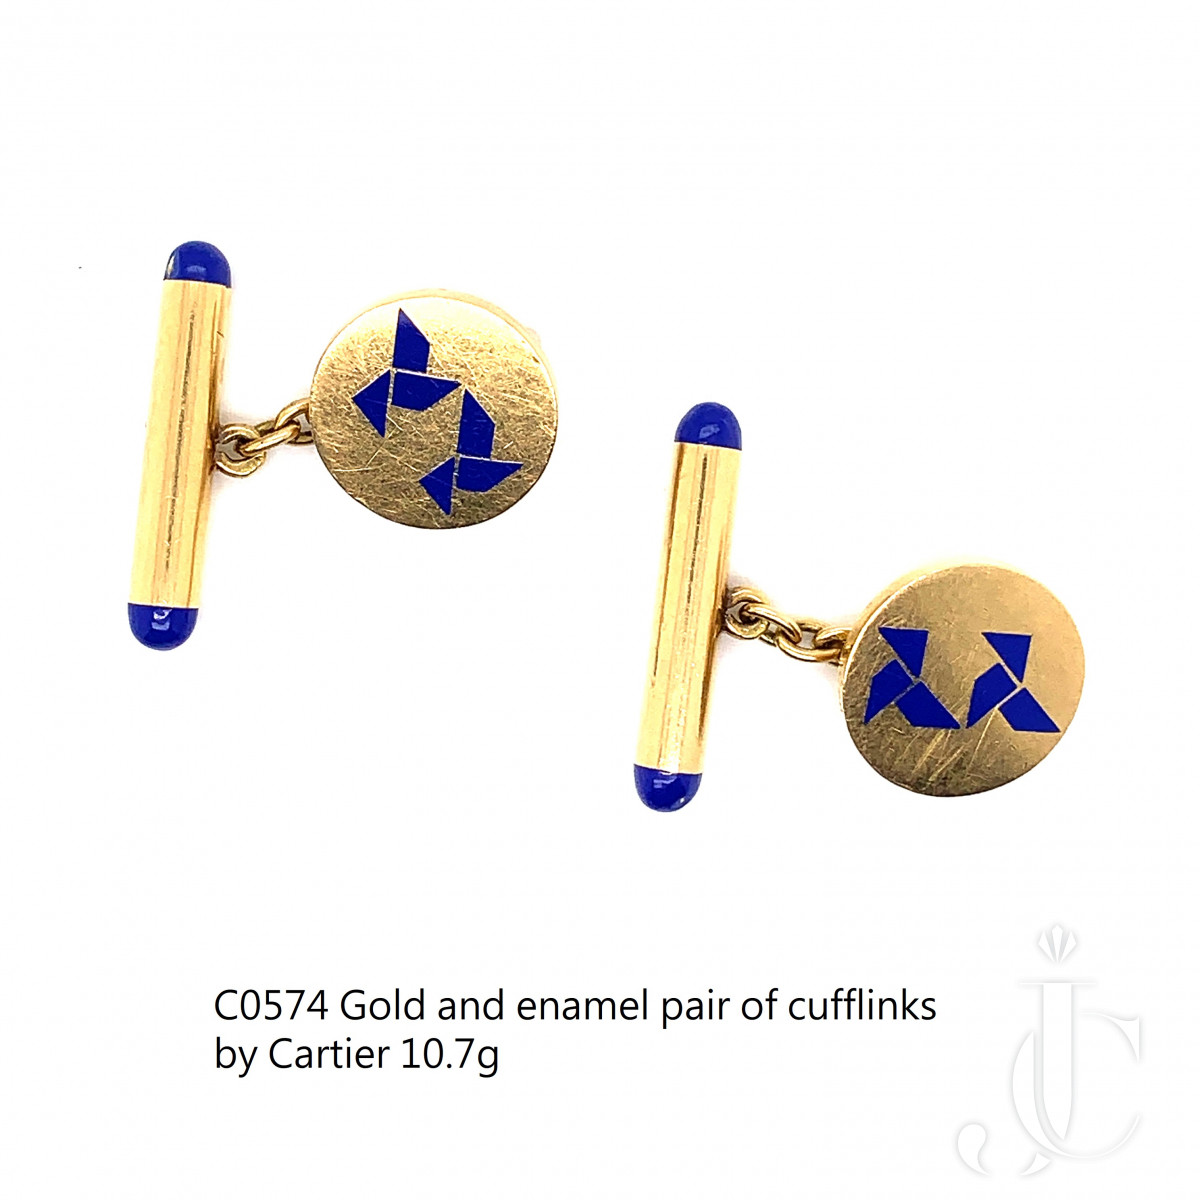 A pair of 18k Gold and ename cufflinks by Cartier